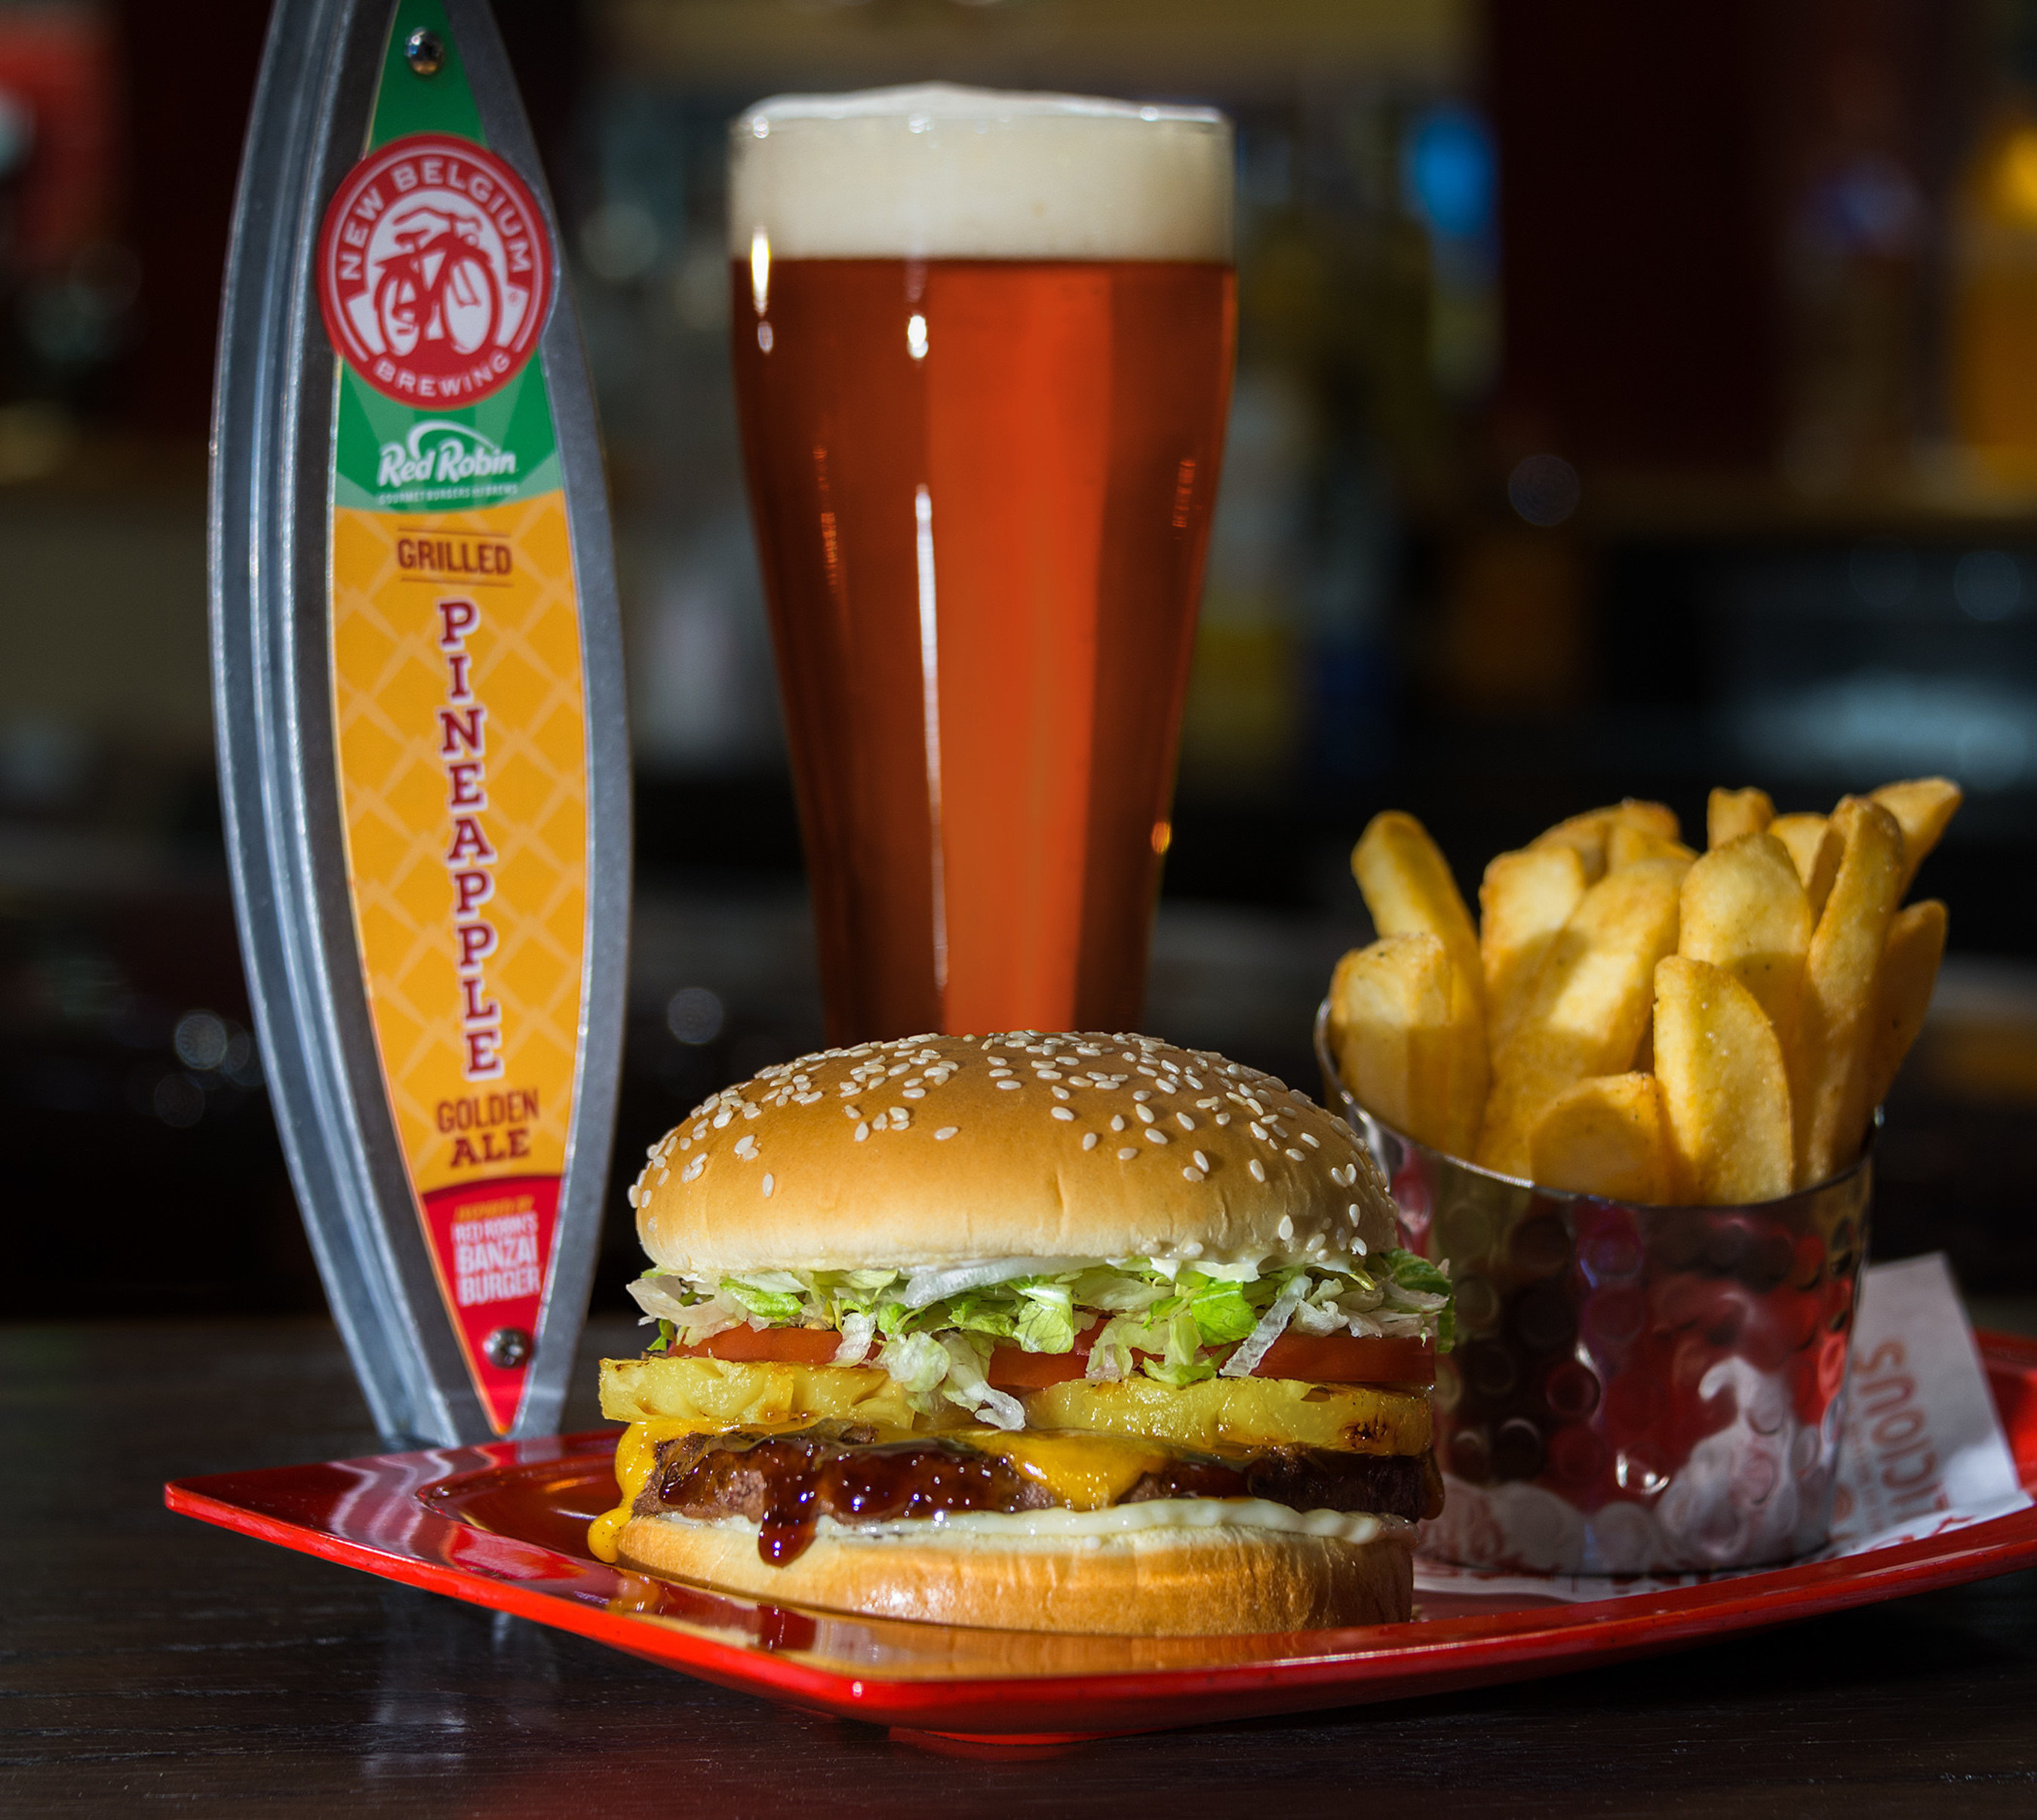 Red Robin Gourmet Burgers and Brews partners with New Belgium Brewing to create Grilled Pineapple Golden Ale, the first-ever special release beer inspired the unique components of Red Robin's famous Banzai Burger. The beer will make its debut at the Great American Beer Festival on Oct. 6-8, in Denver, and will be served on-tap at Red Robin Gourmet Burgers and Brews restaurant throughout Colorado while supplies last.